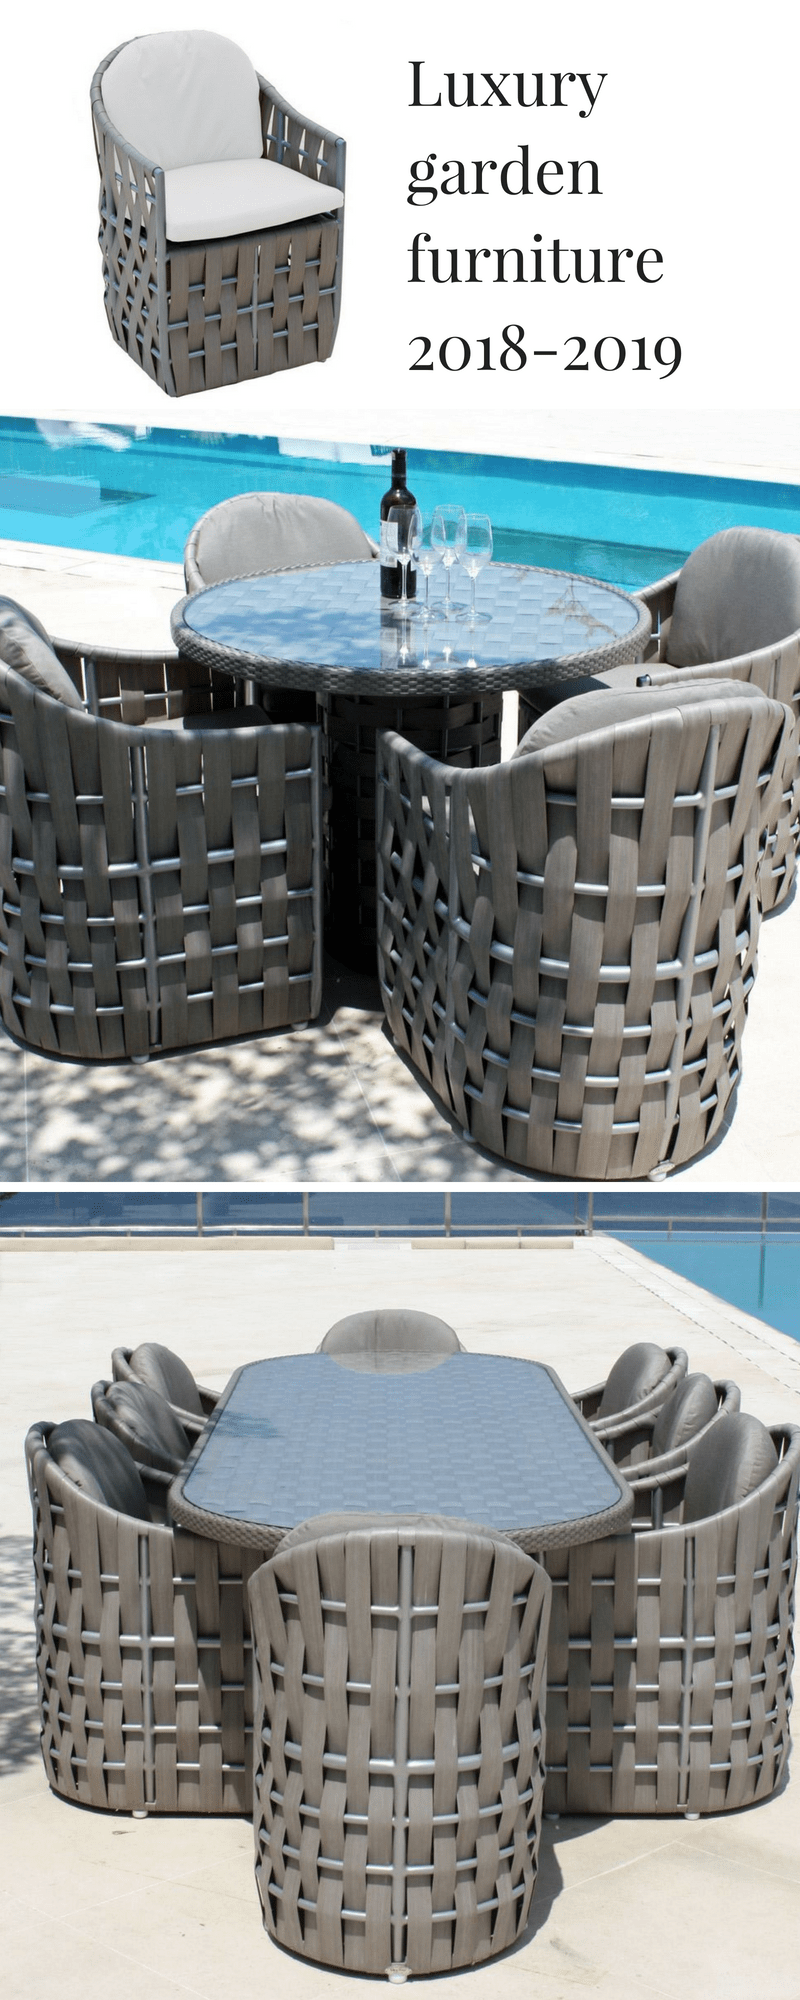 Skyline luxury outdoors furniture